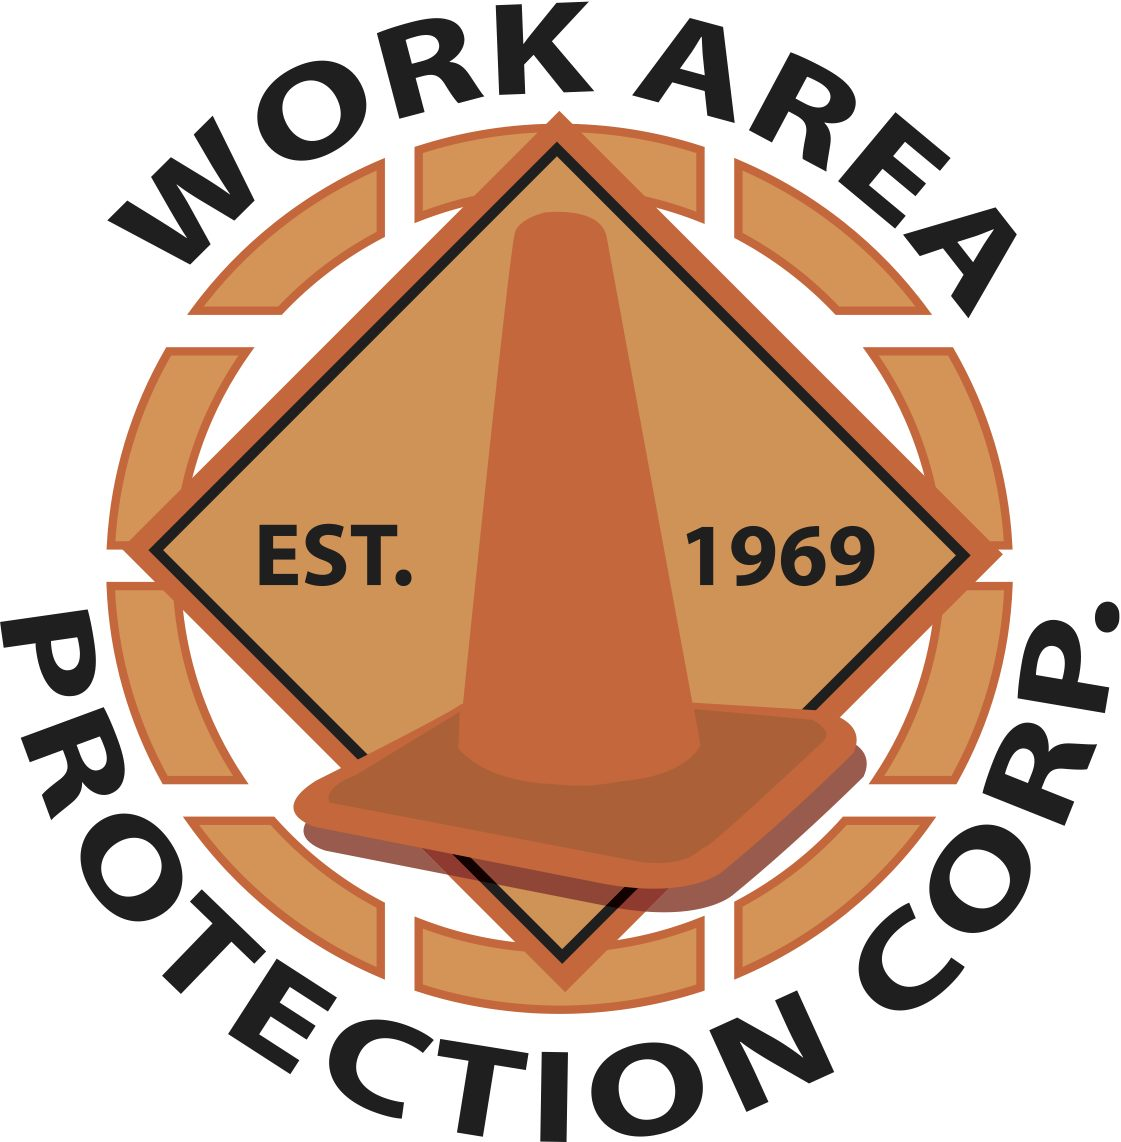 Work Area Protection Corp. logo